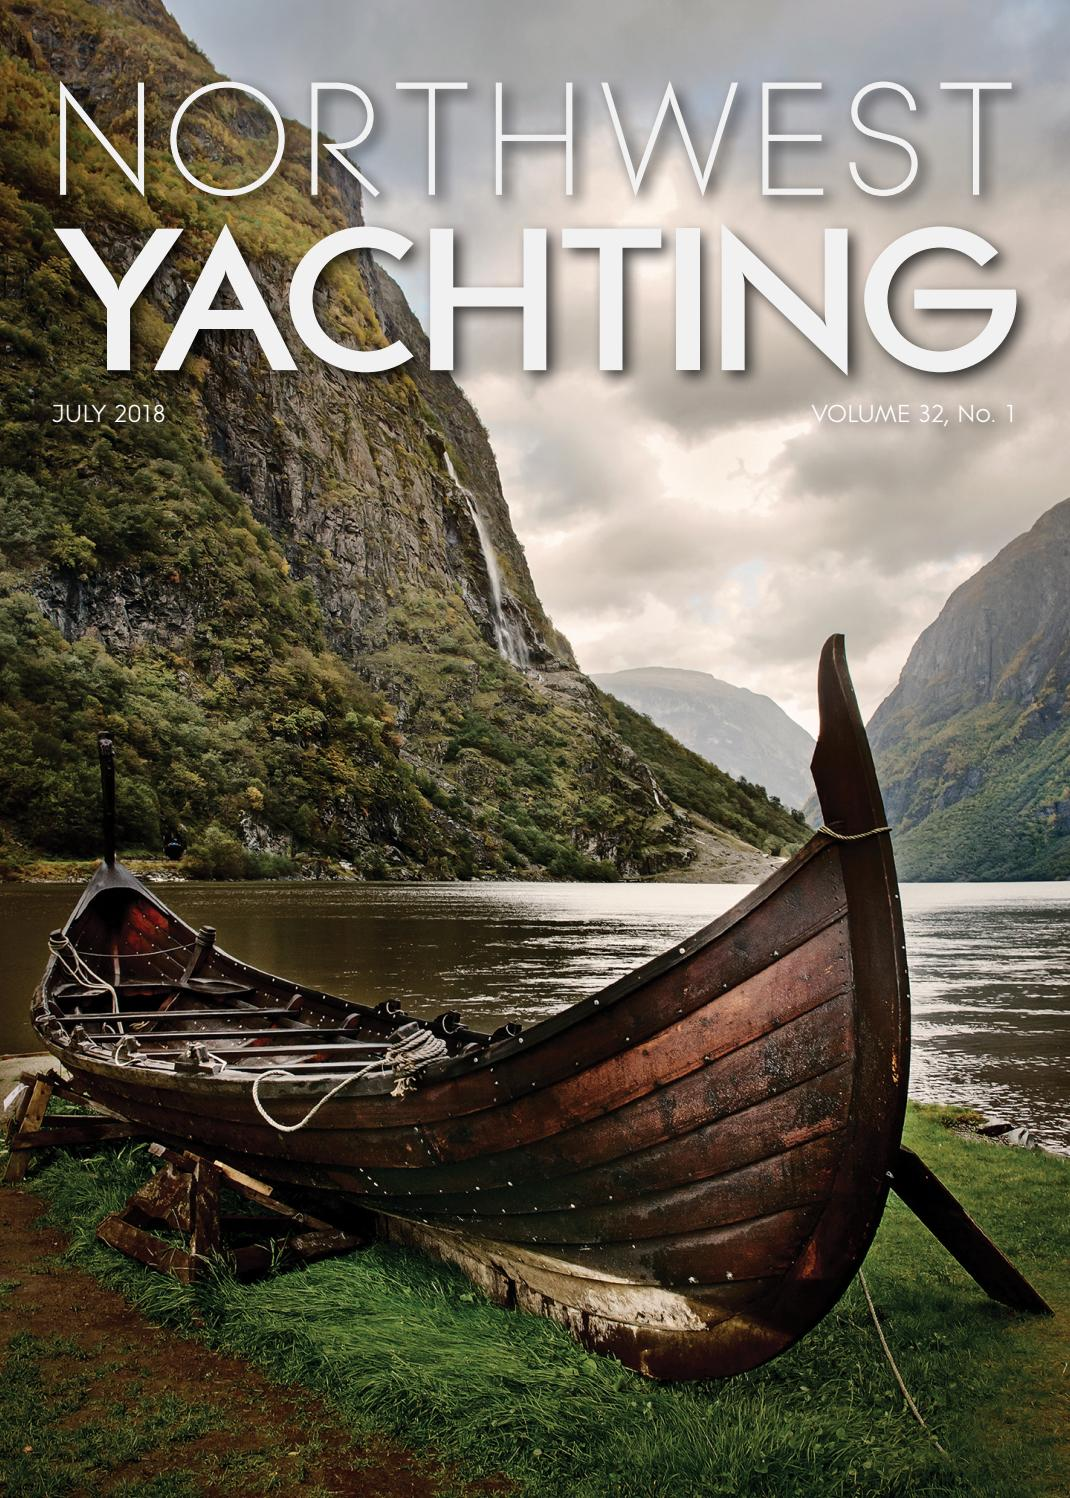 Northwest Yachting July 2018 By Issuu Potato Battery Dc Circuits Electronics Textbook